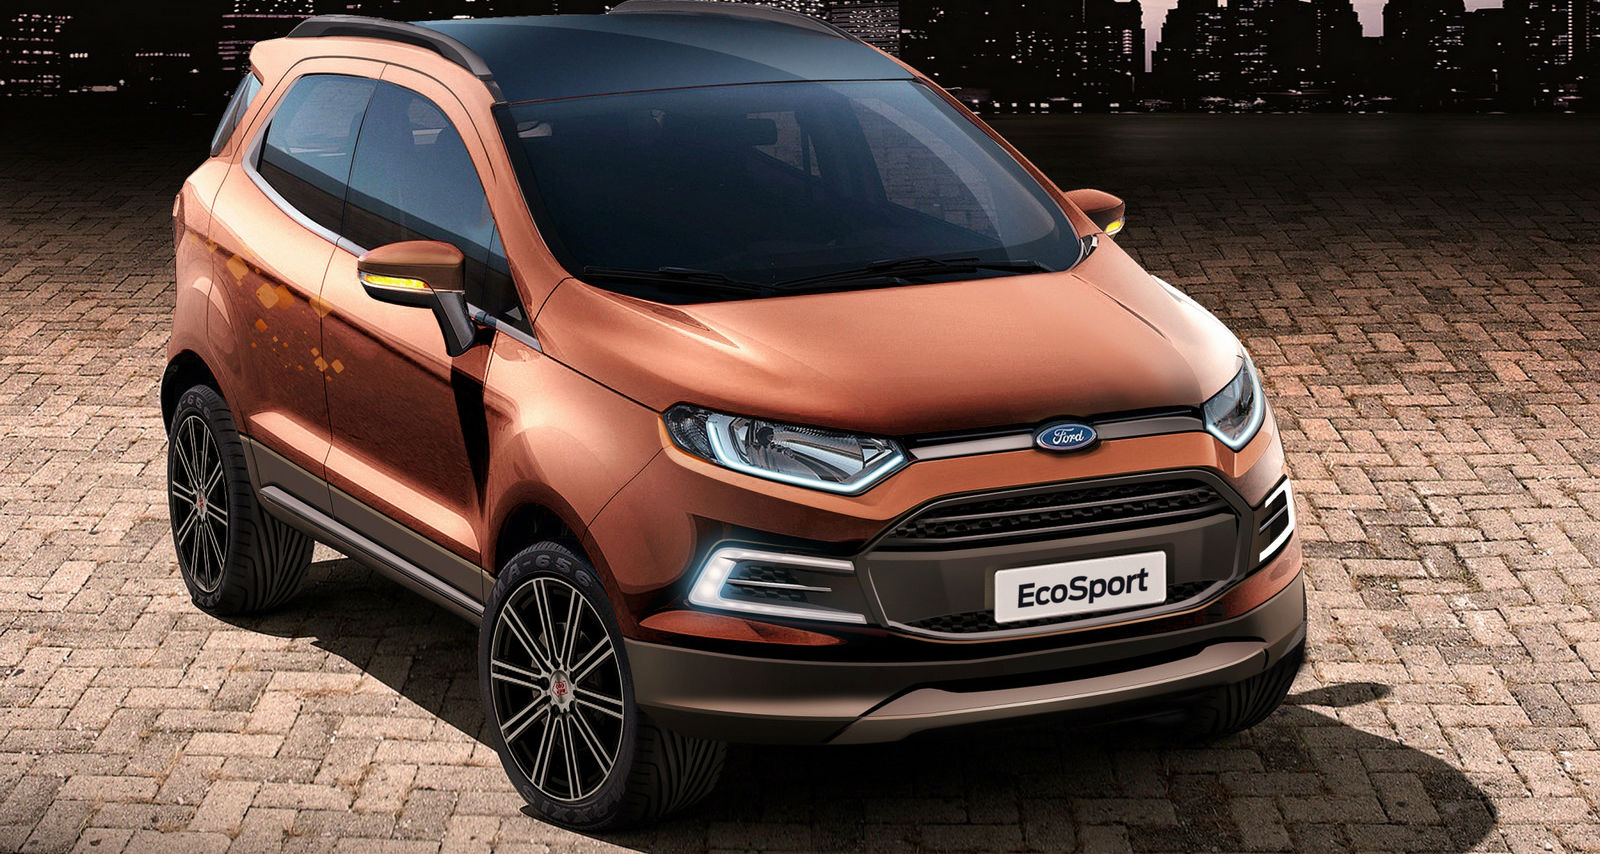 2014_ford_ecosport_beauty_concept_01